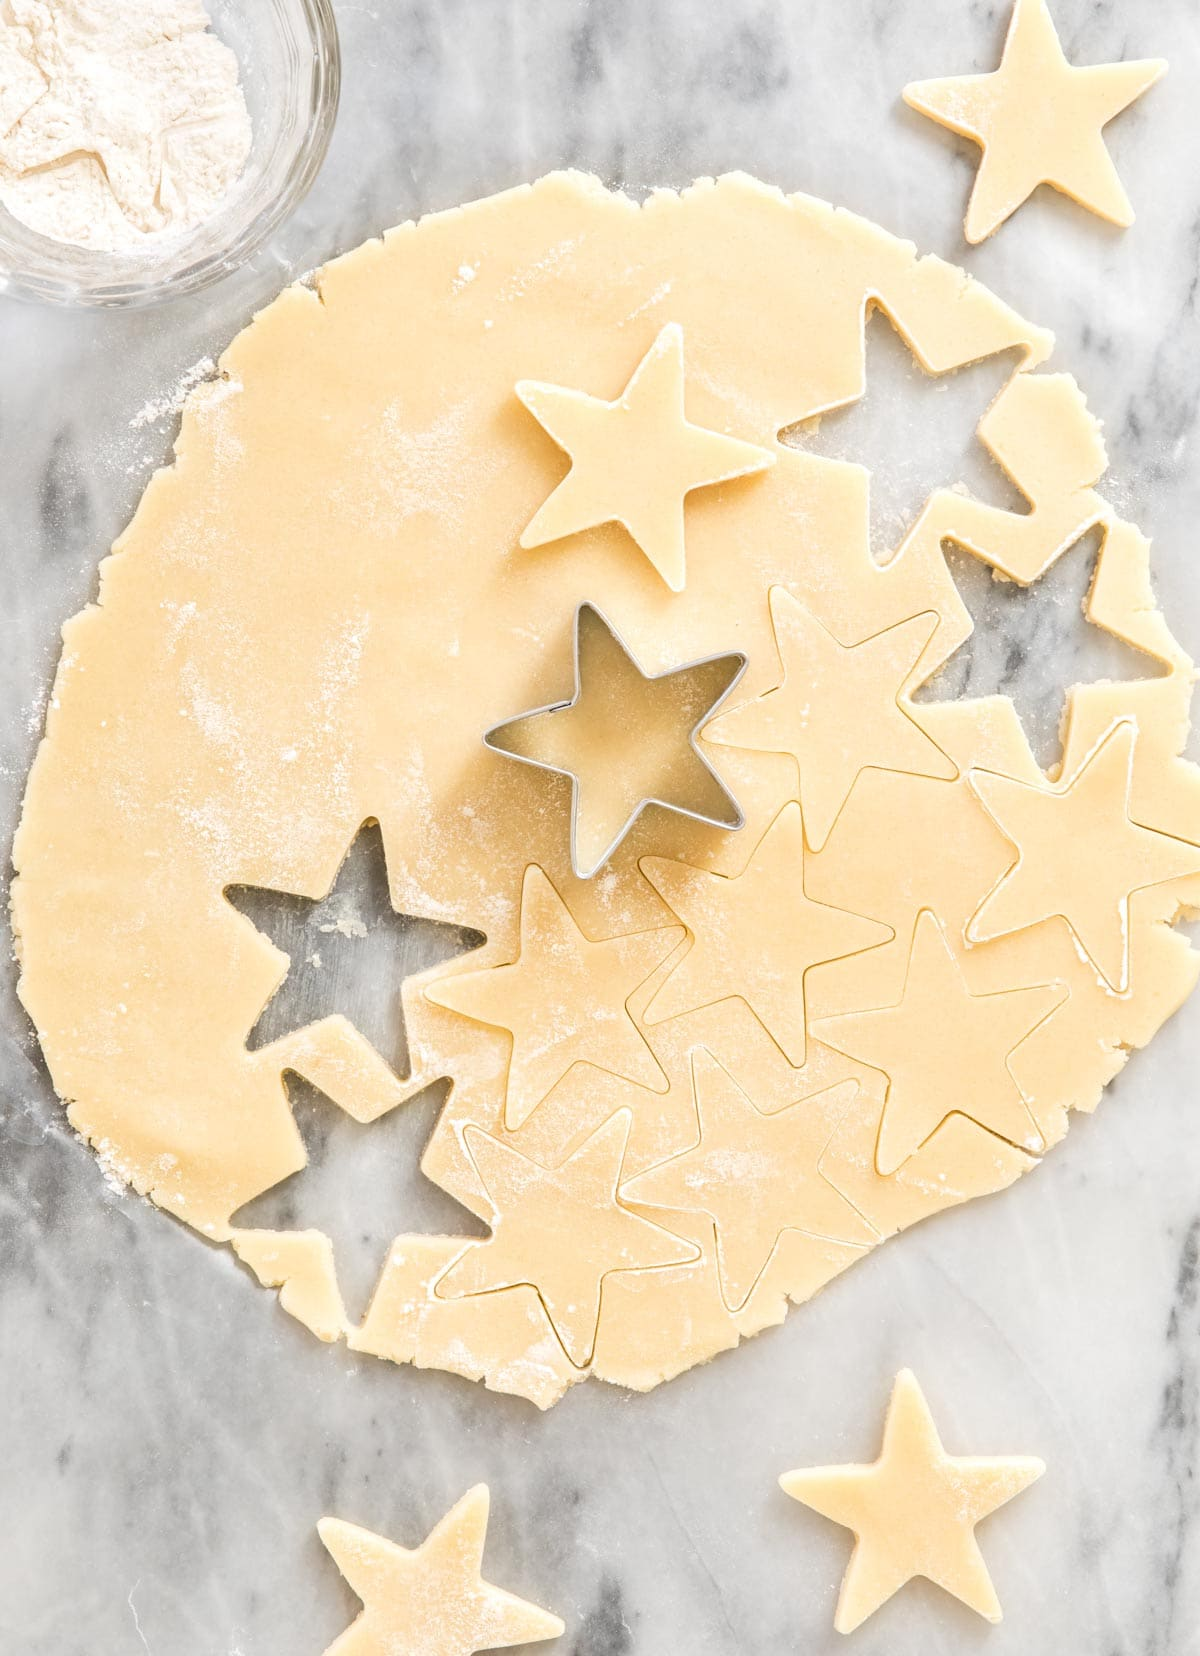 cutting star shapes out of cookie dough